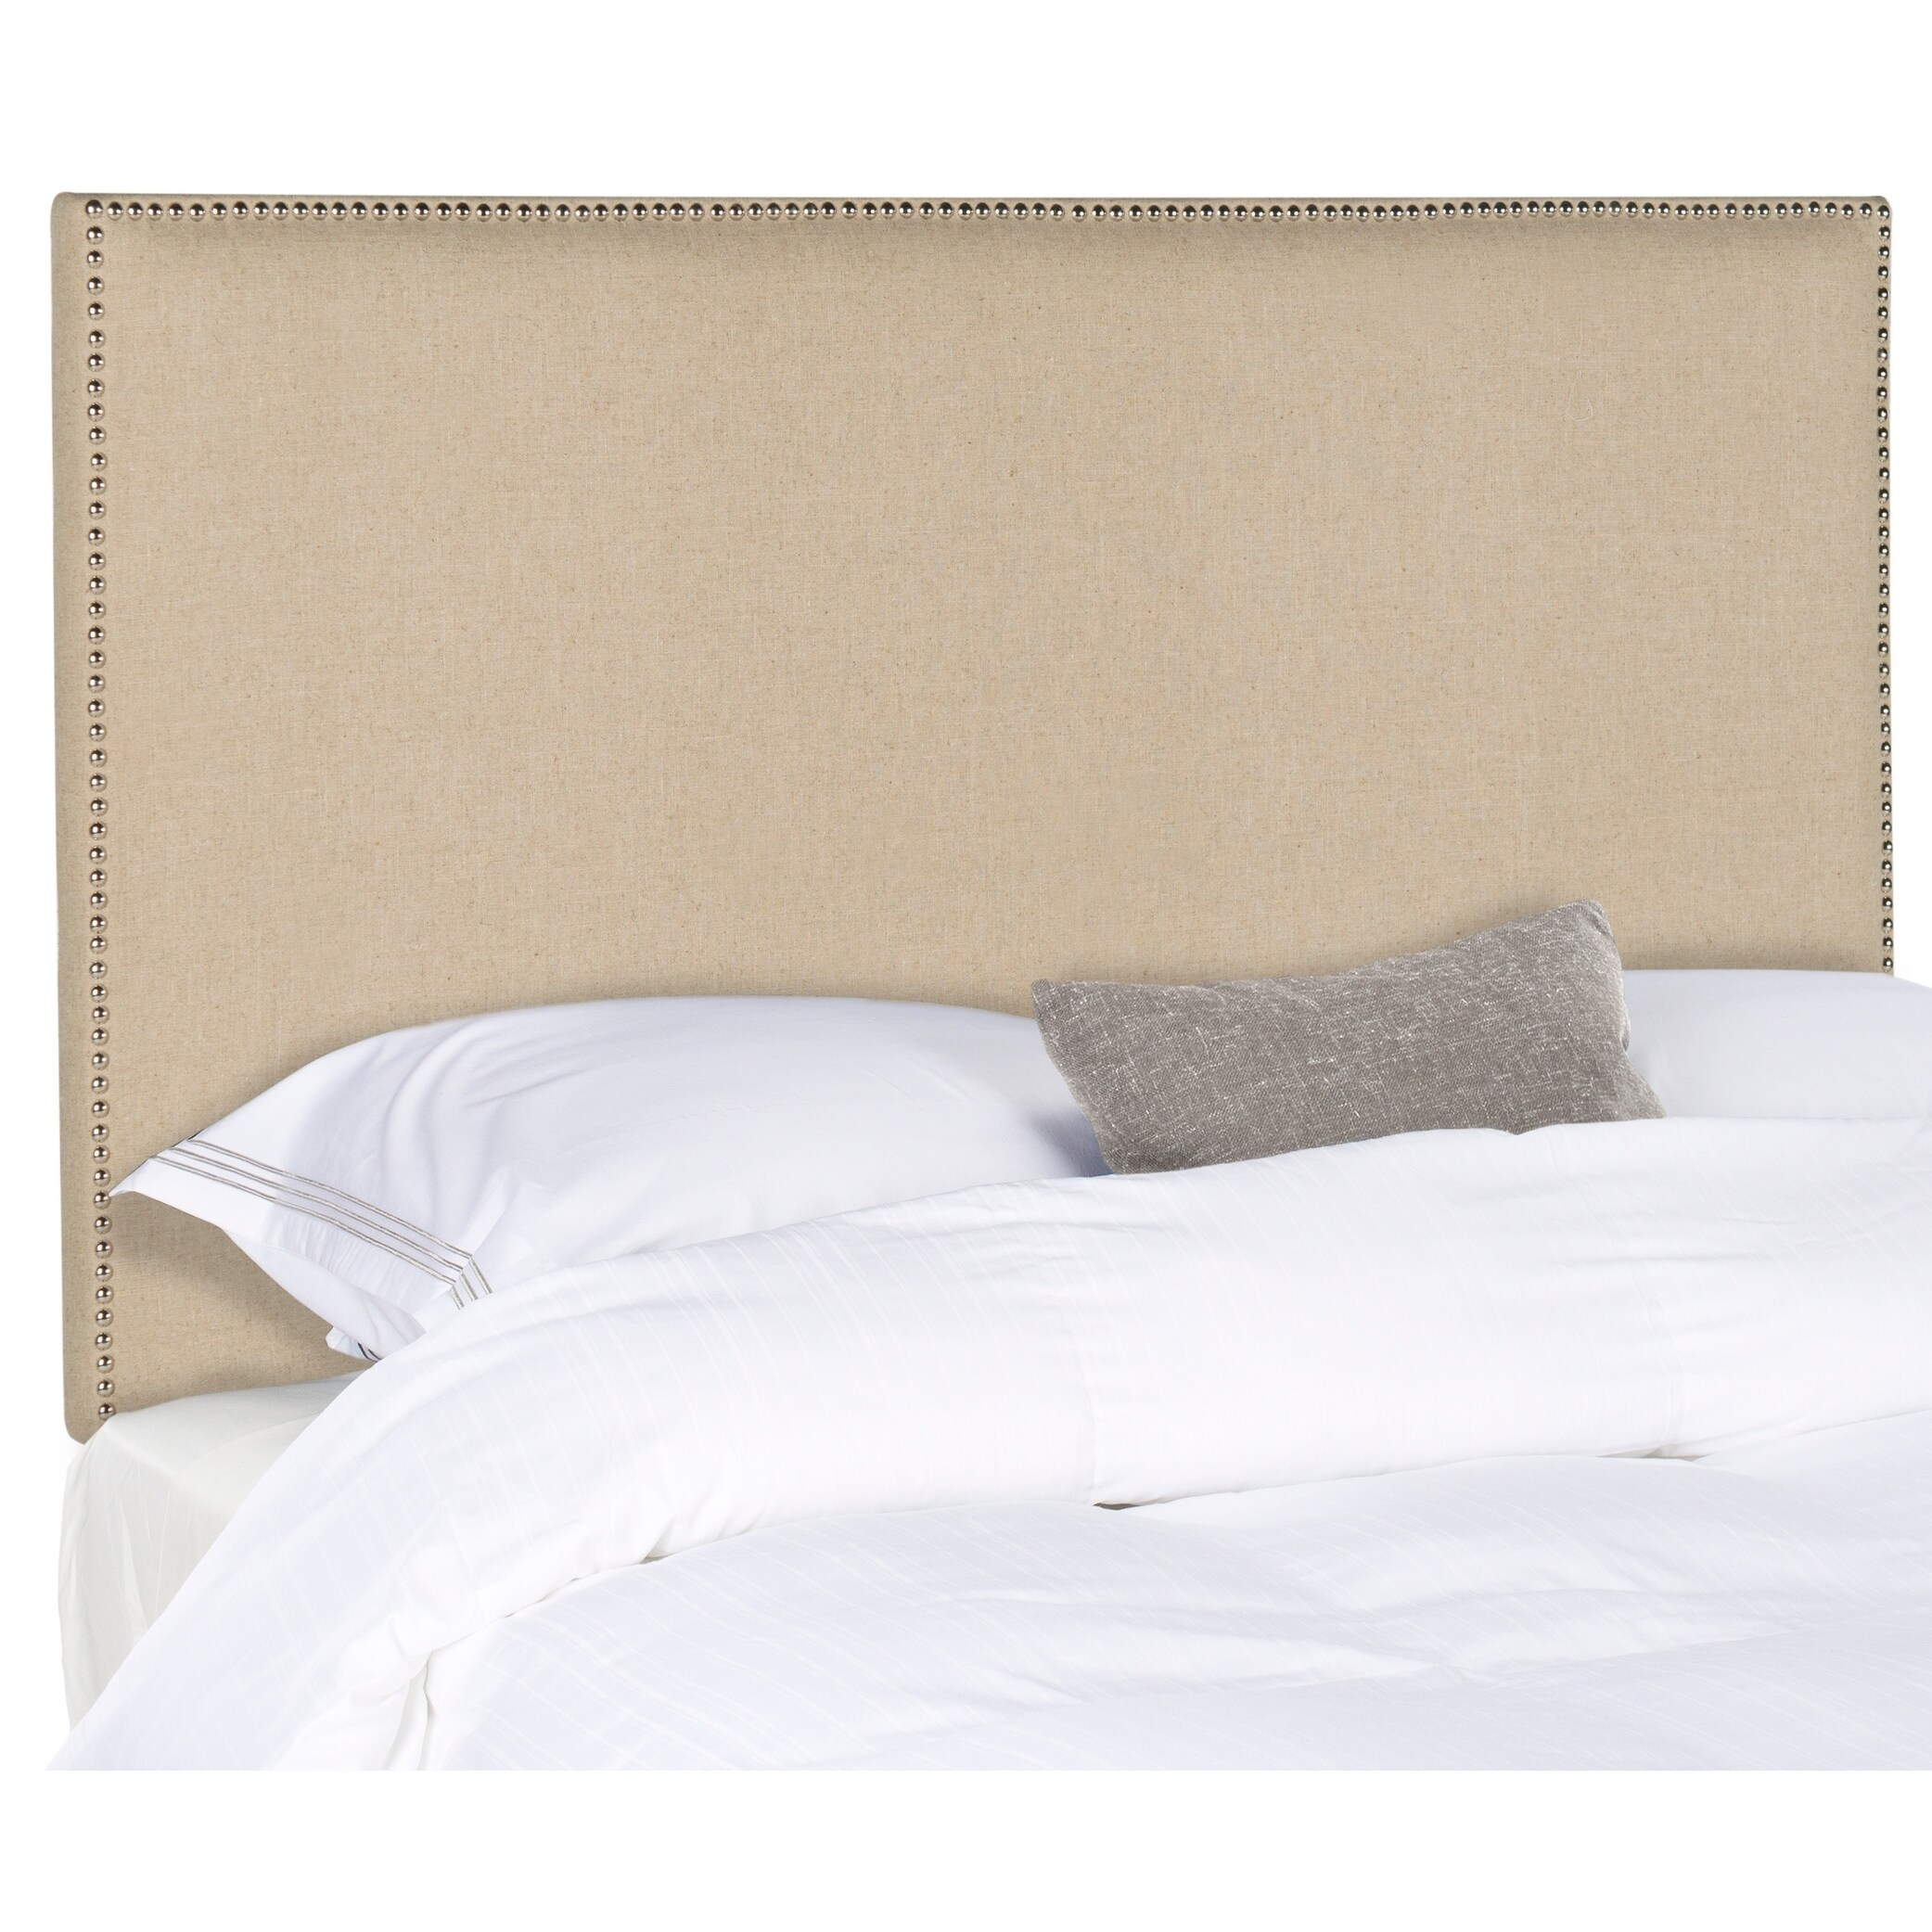 Shop Safavieh Sydney Hemp Silver Nail Head Queen Headboard